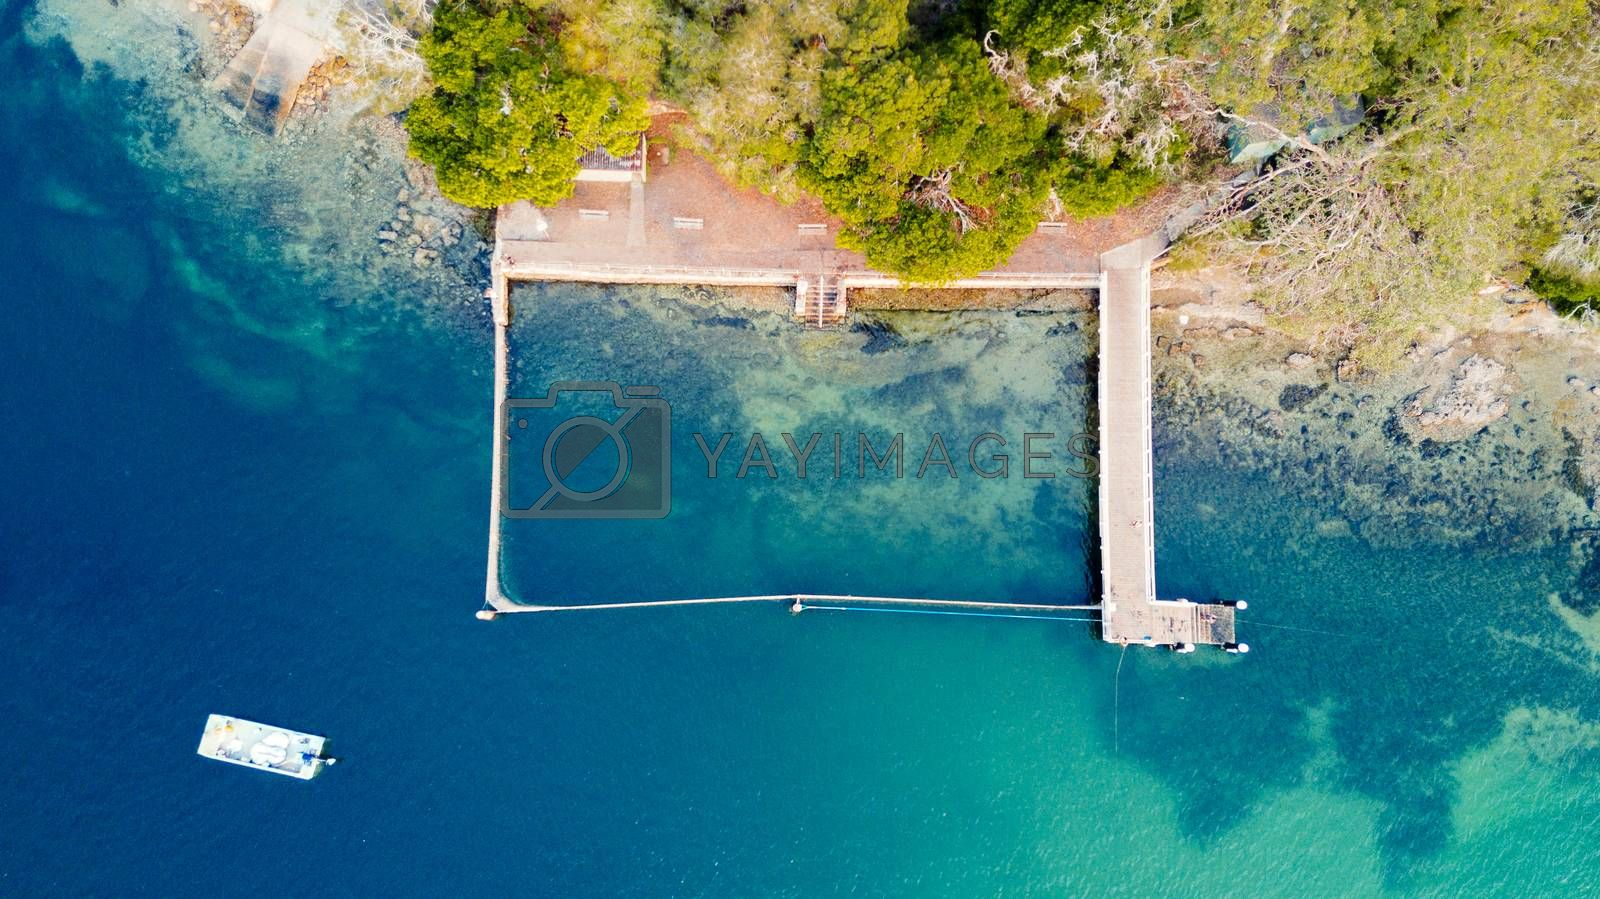 Overhead view of one of Sydney's many free coastal swimming pools.  The ocean is fenced with a free moving net.